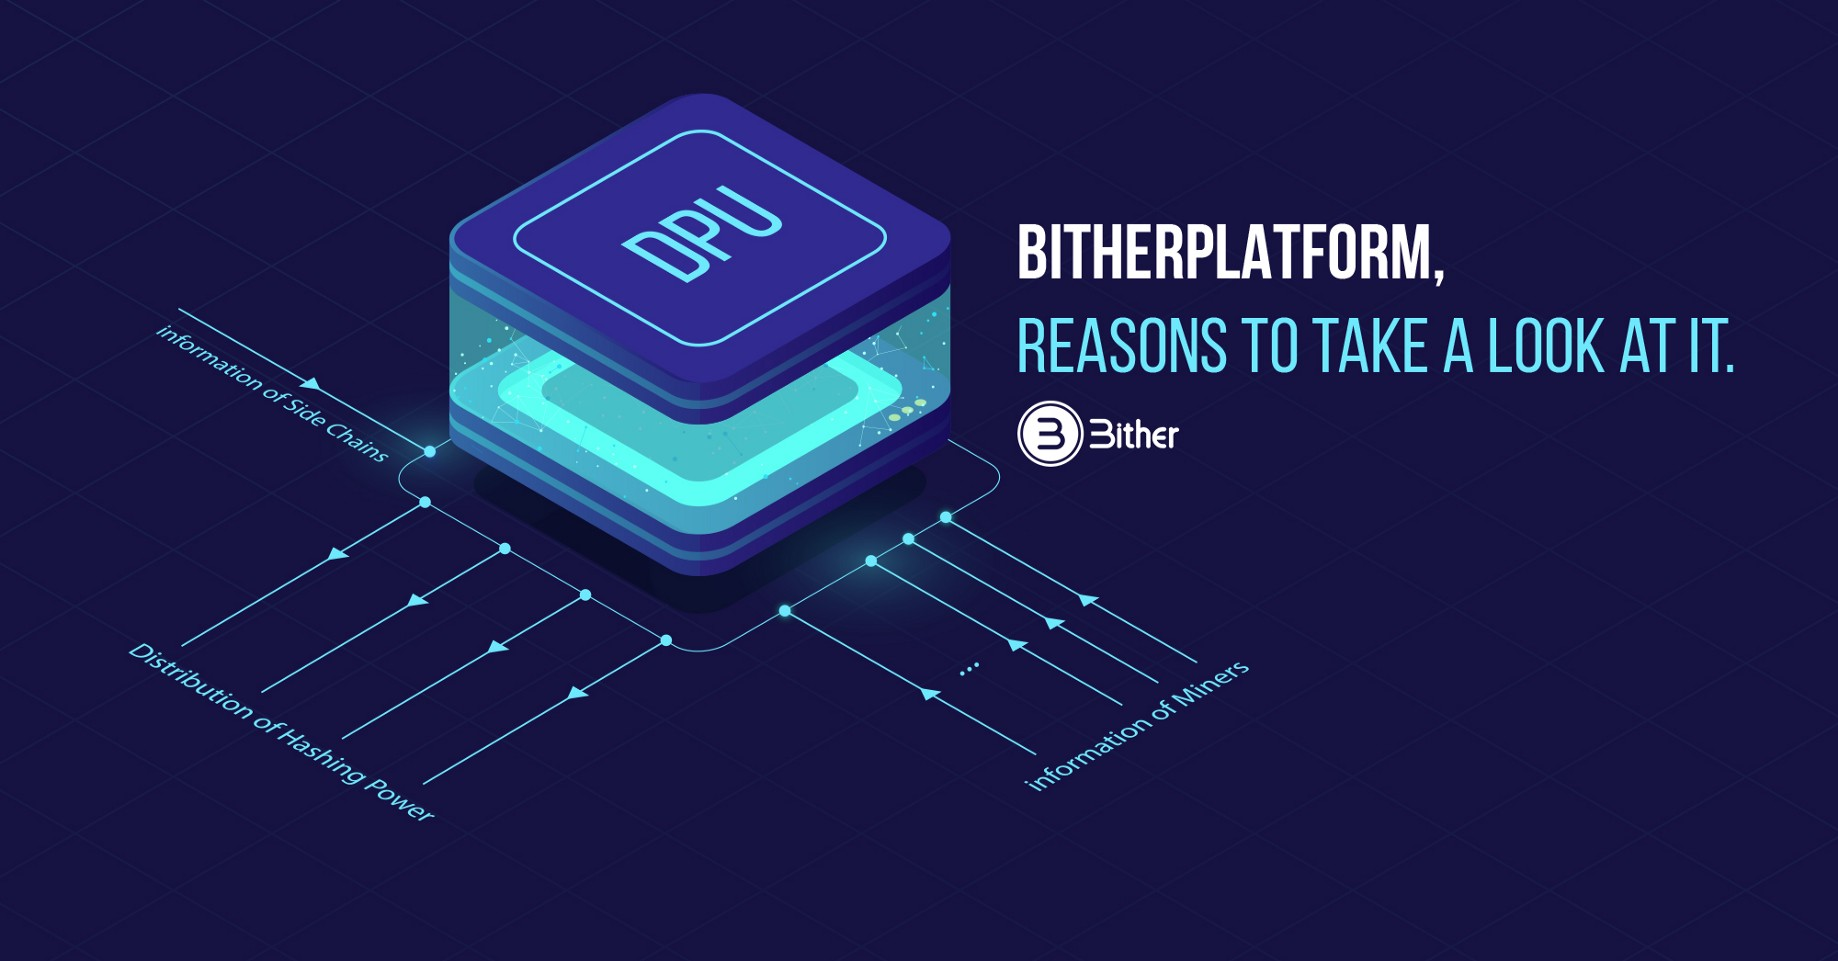 BitherPlatform, Reasons to Take a Look at It